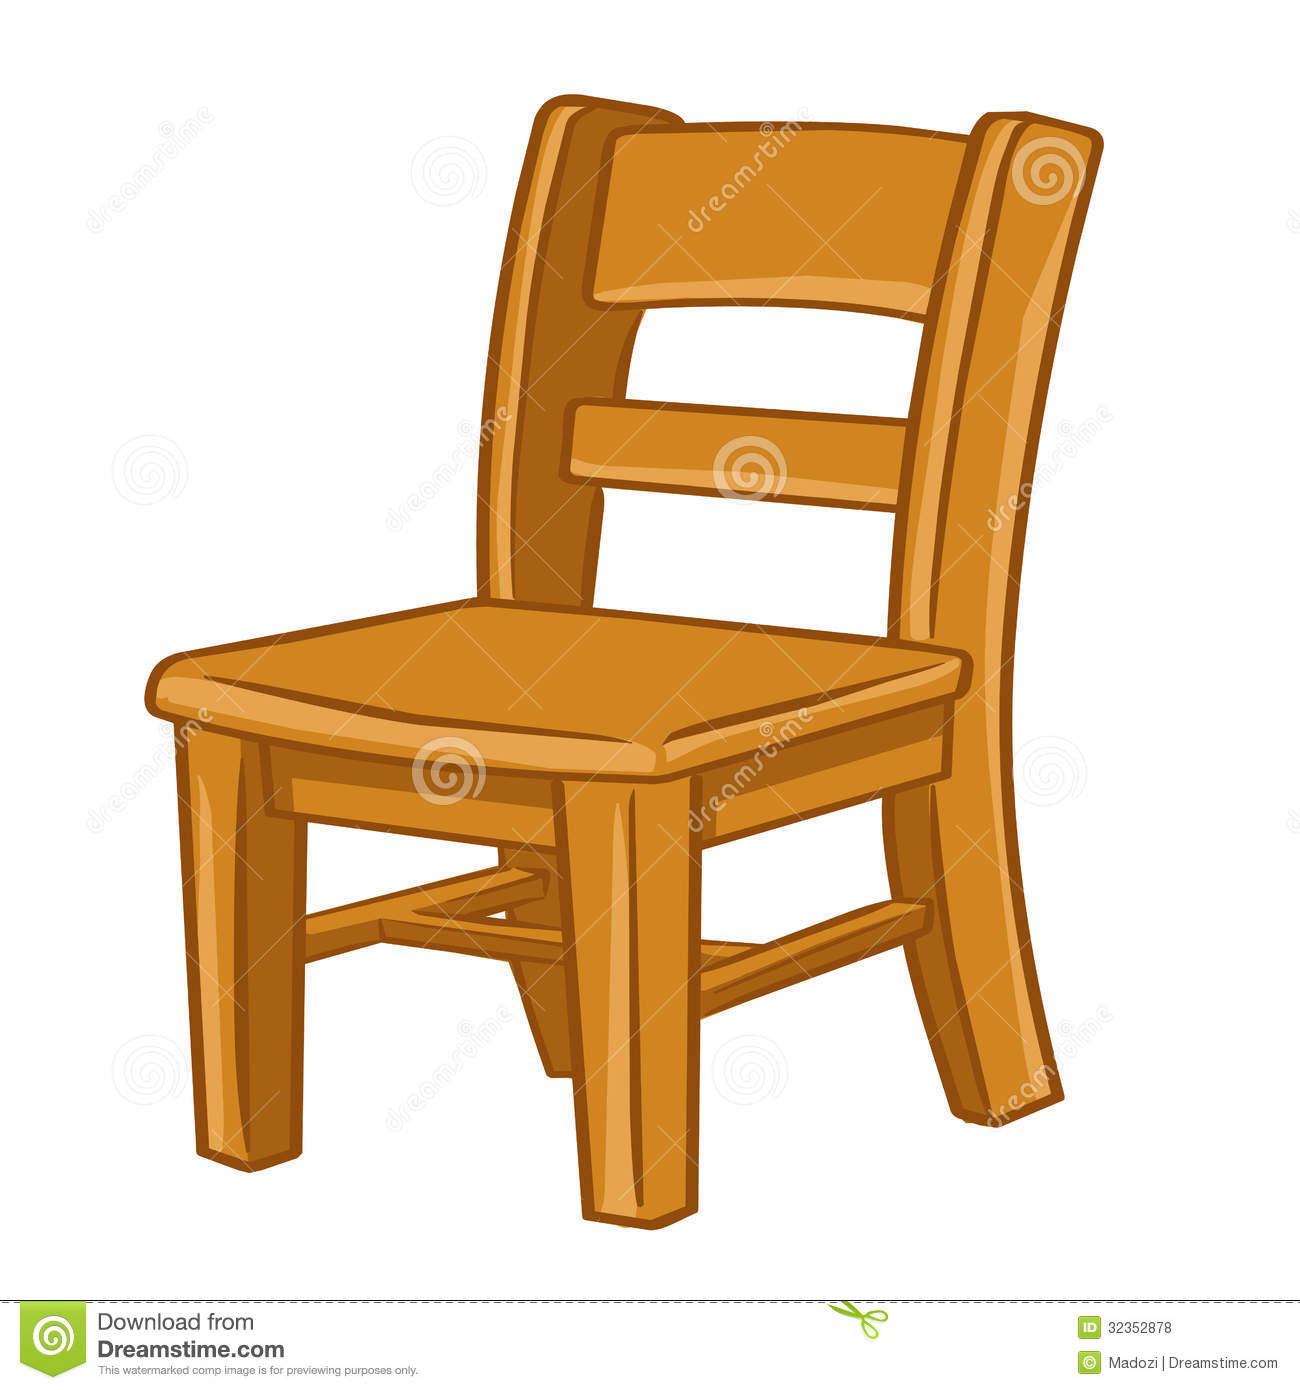 Chair clipart black and white panda free